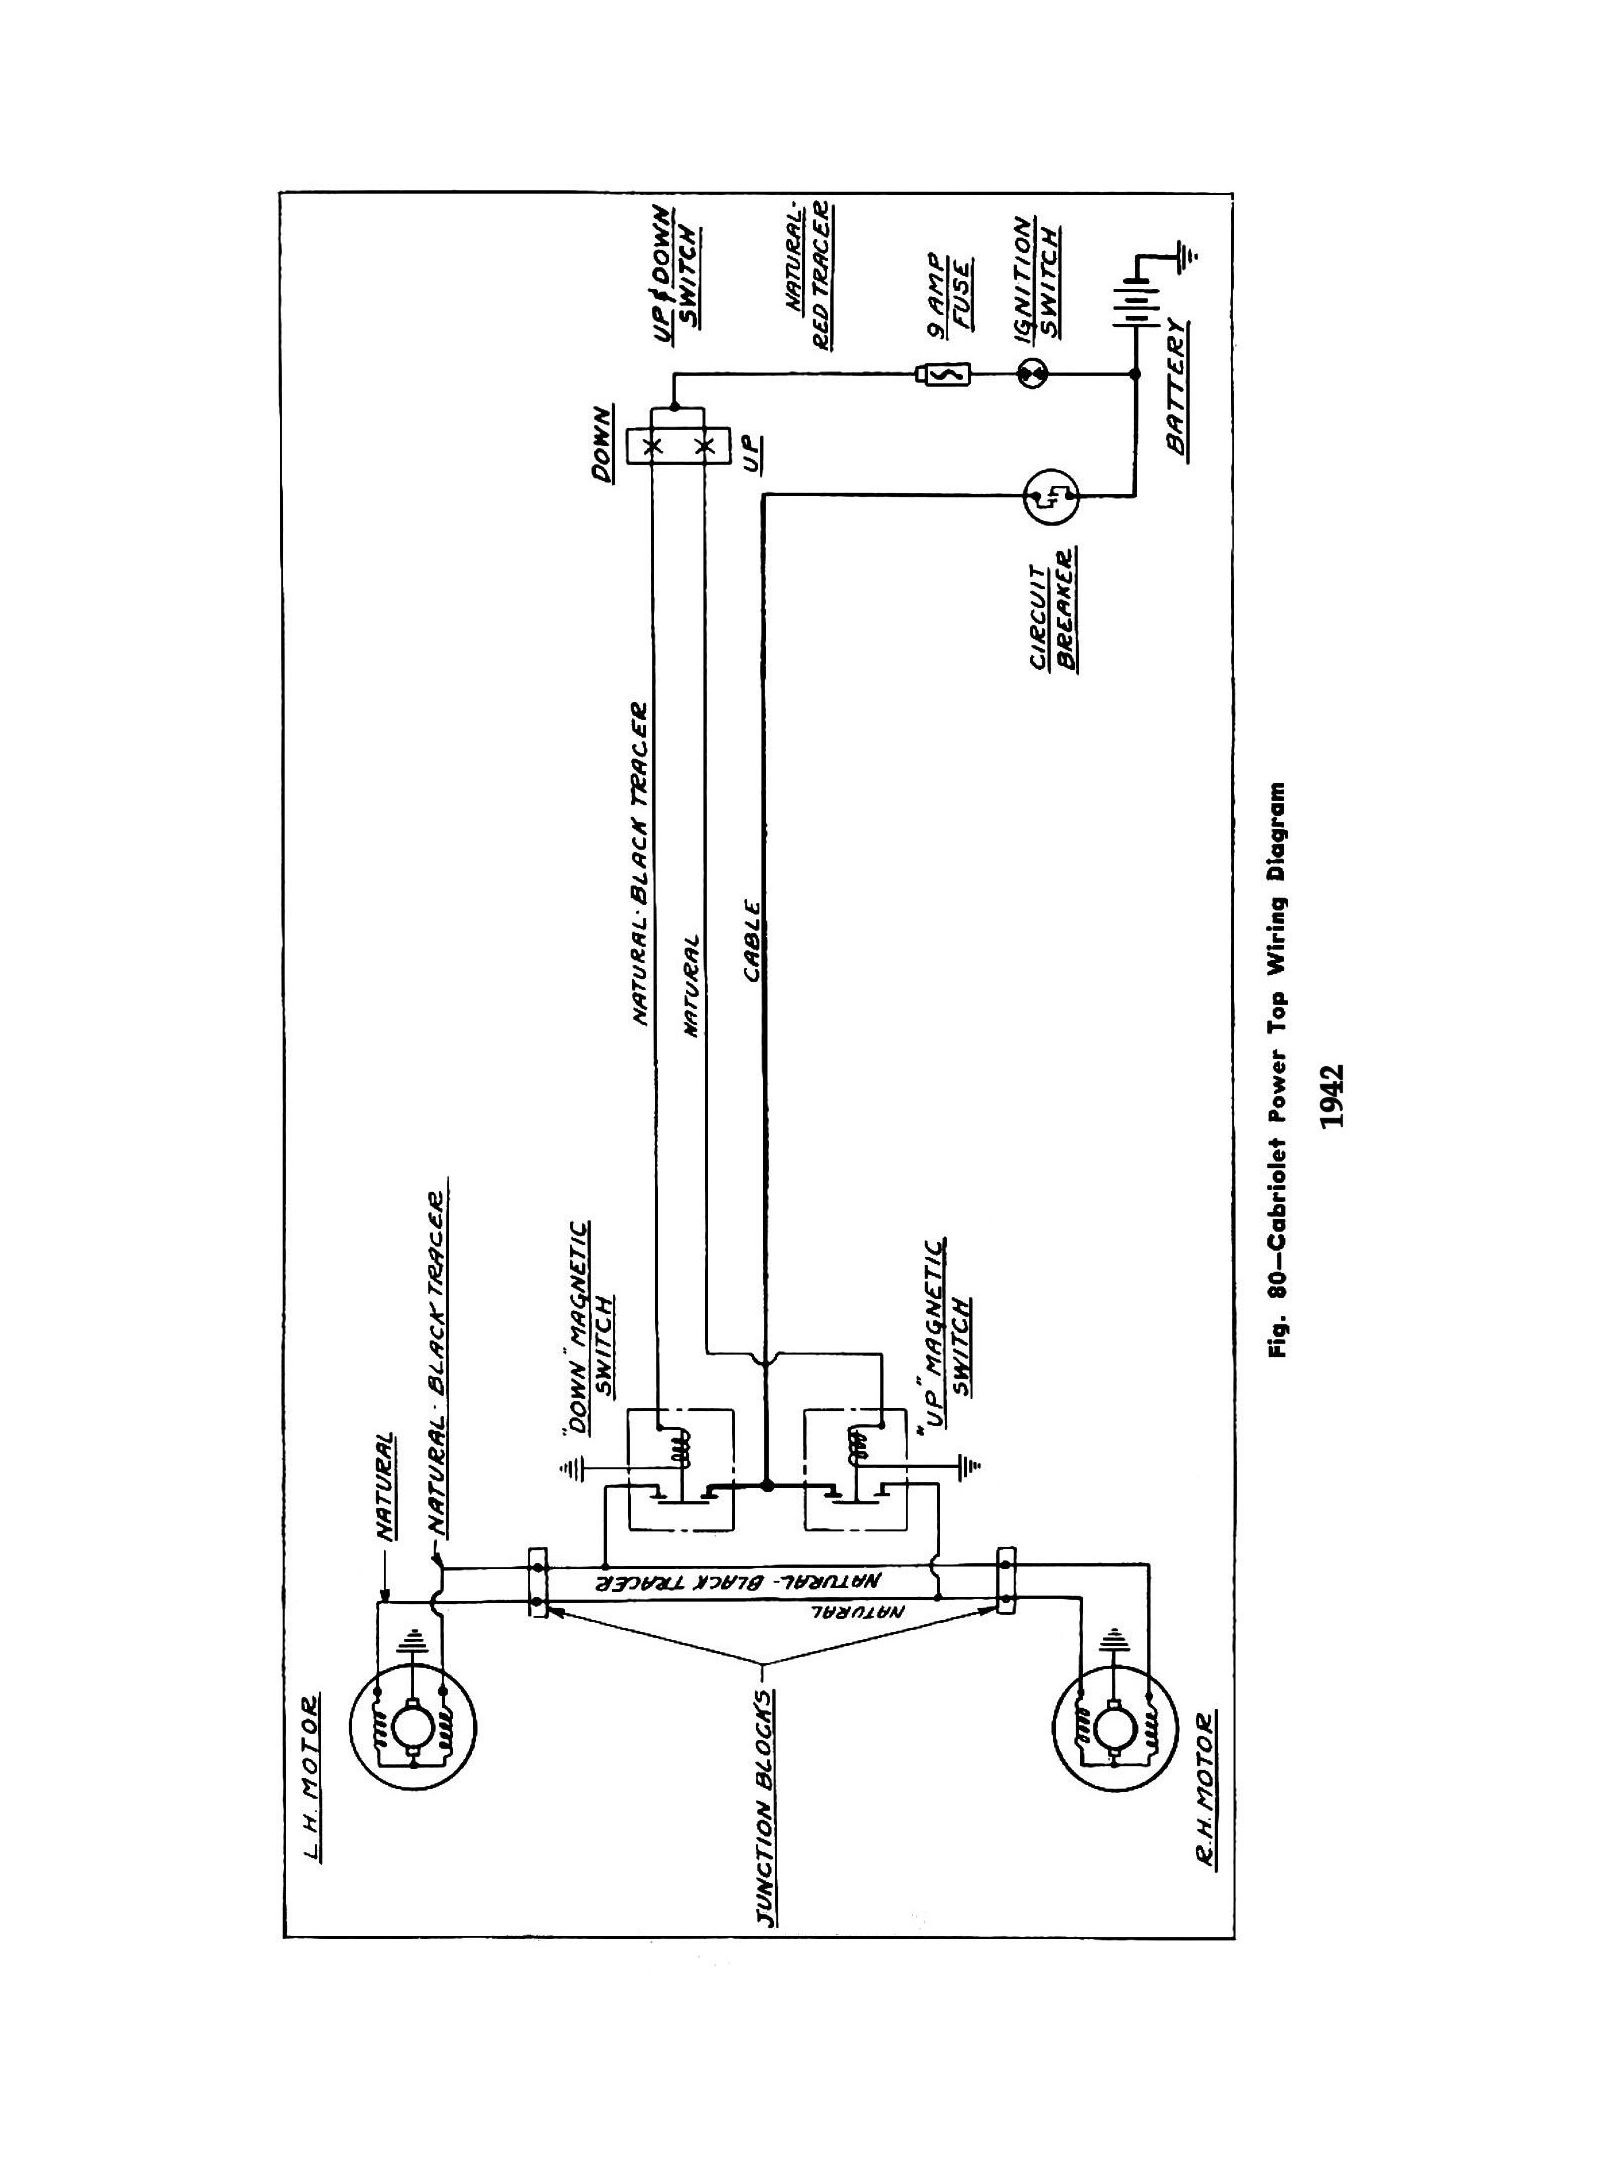 Fluorescent Light Ballast Wiring Diagram Without Wire